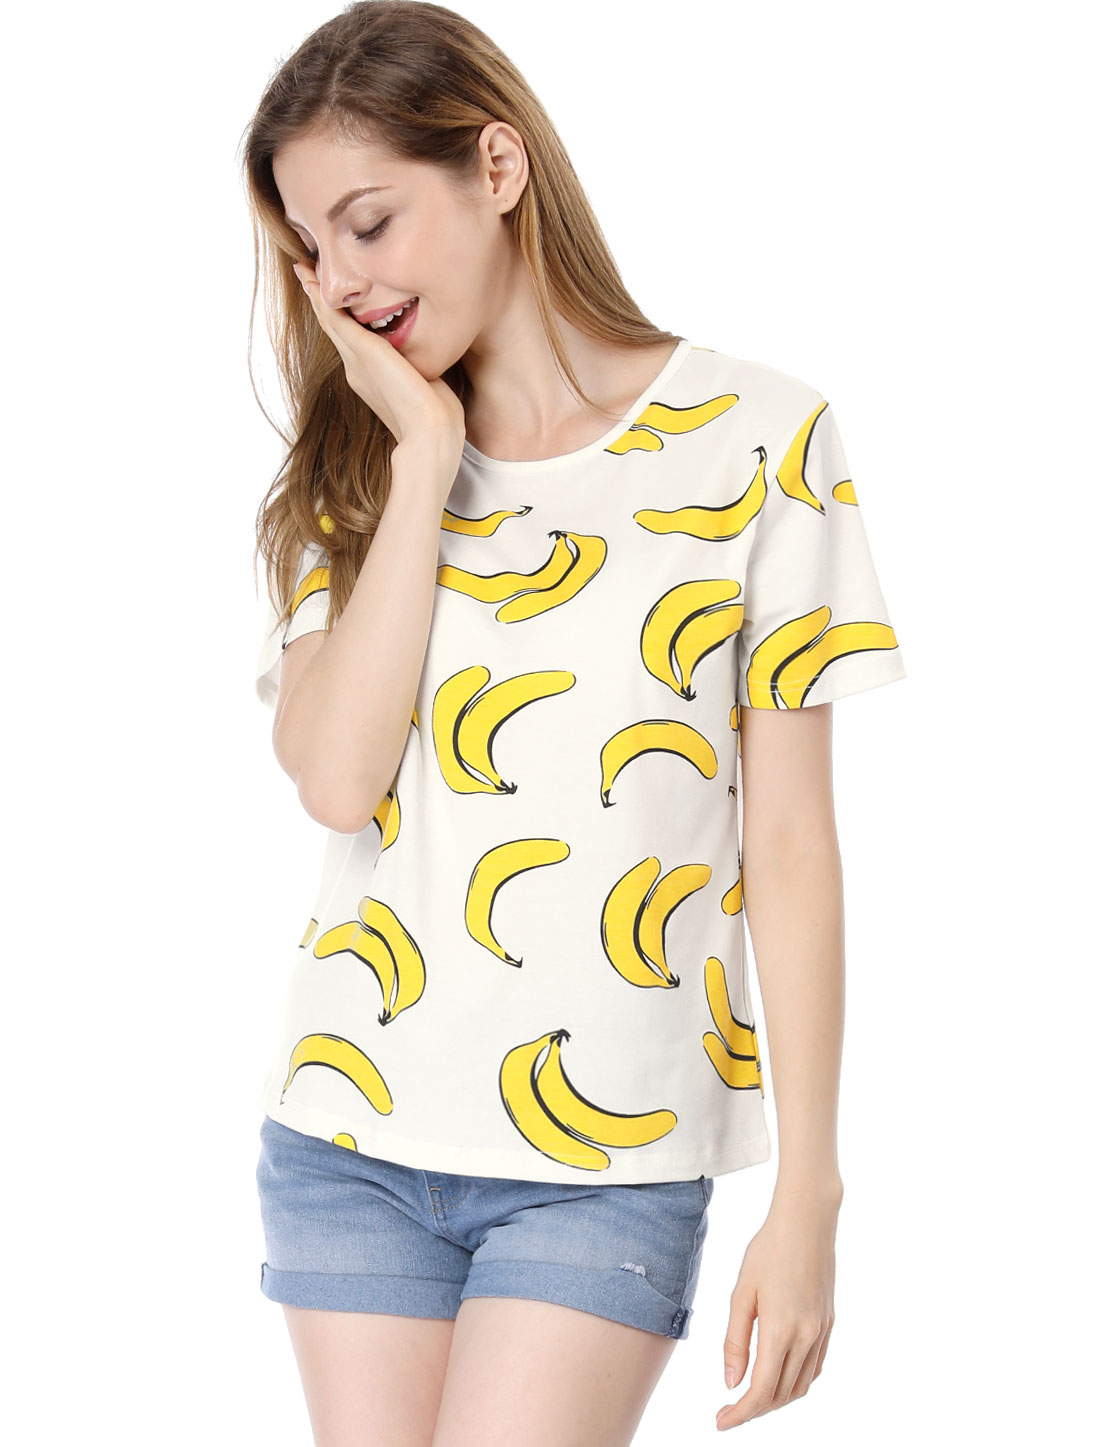 Ladies Bananas Printed Short Sleeves Casual T-Shirts White S